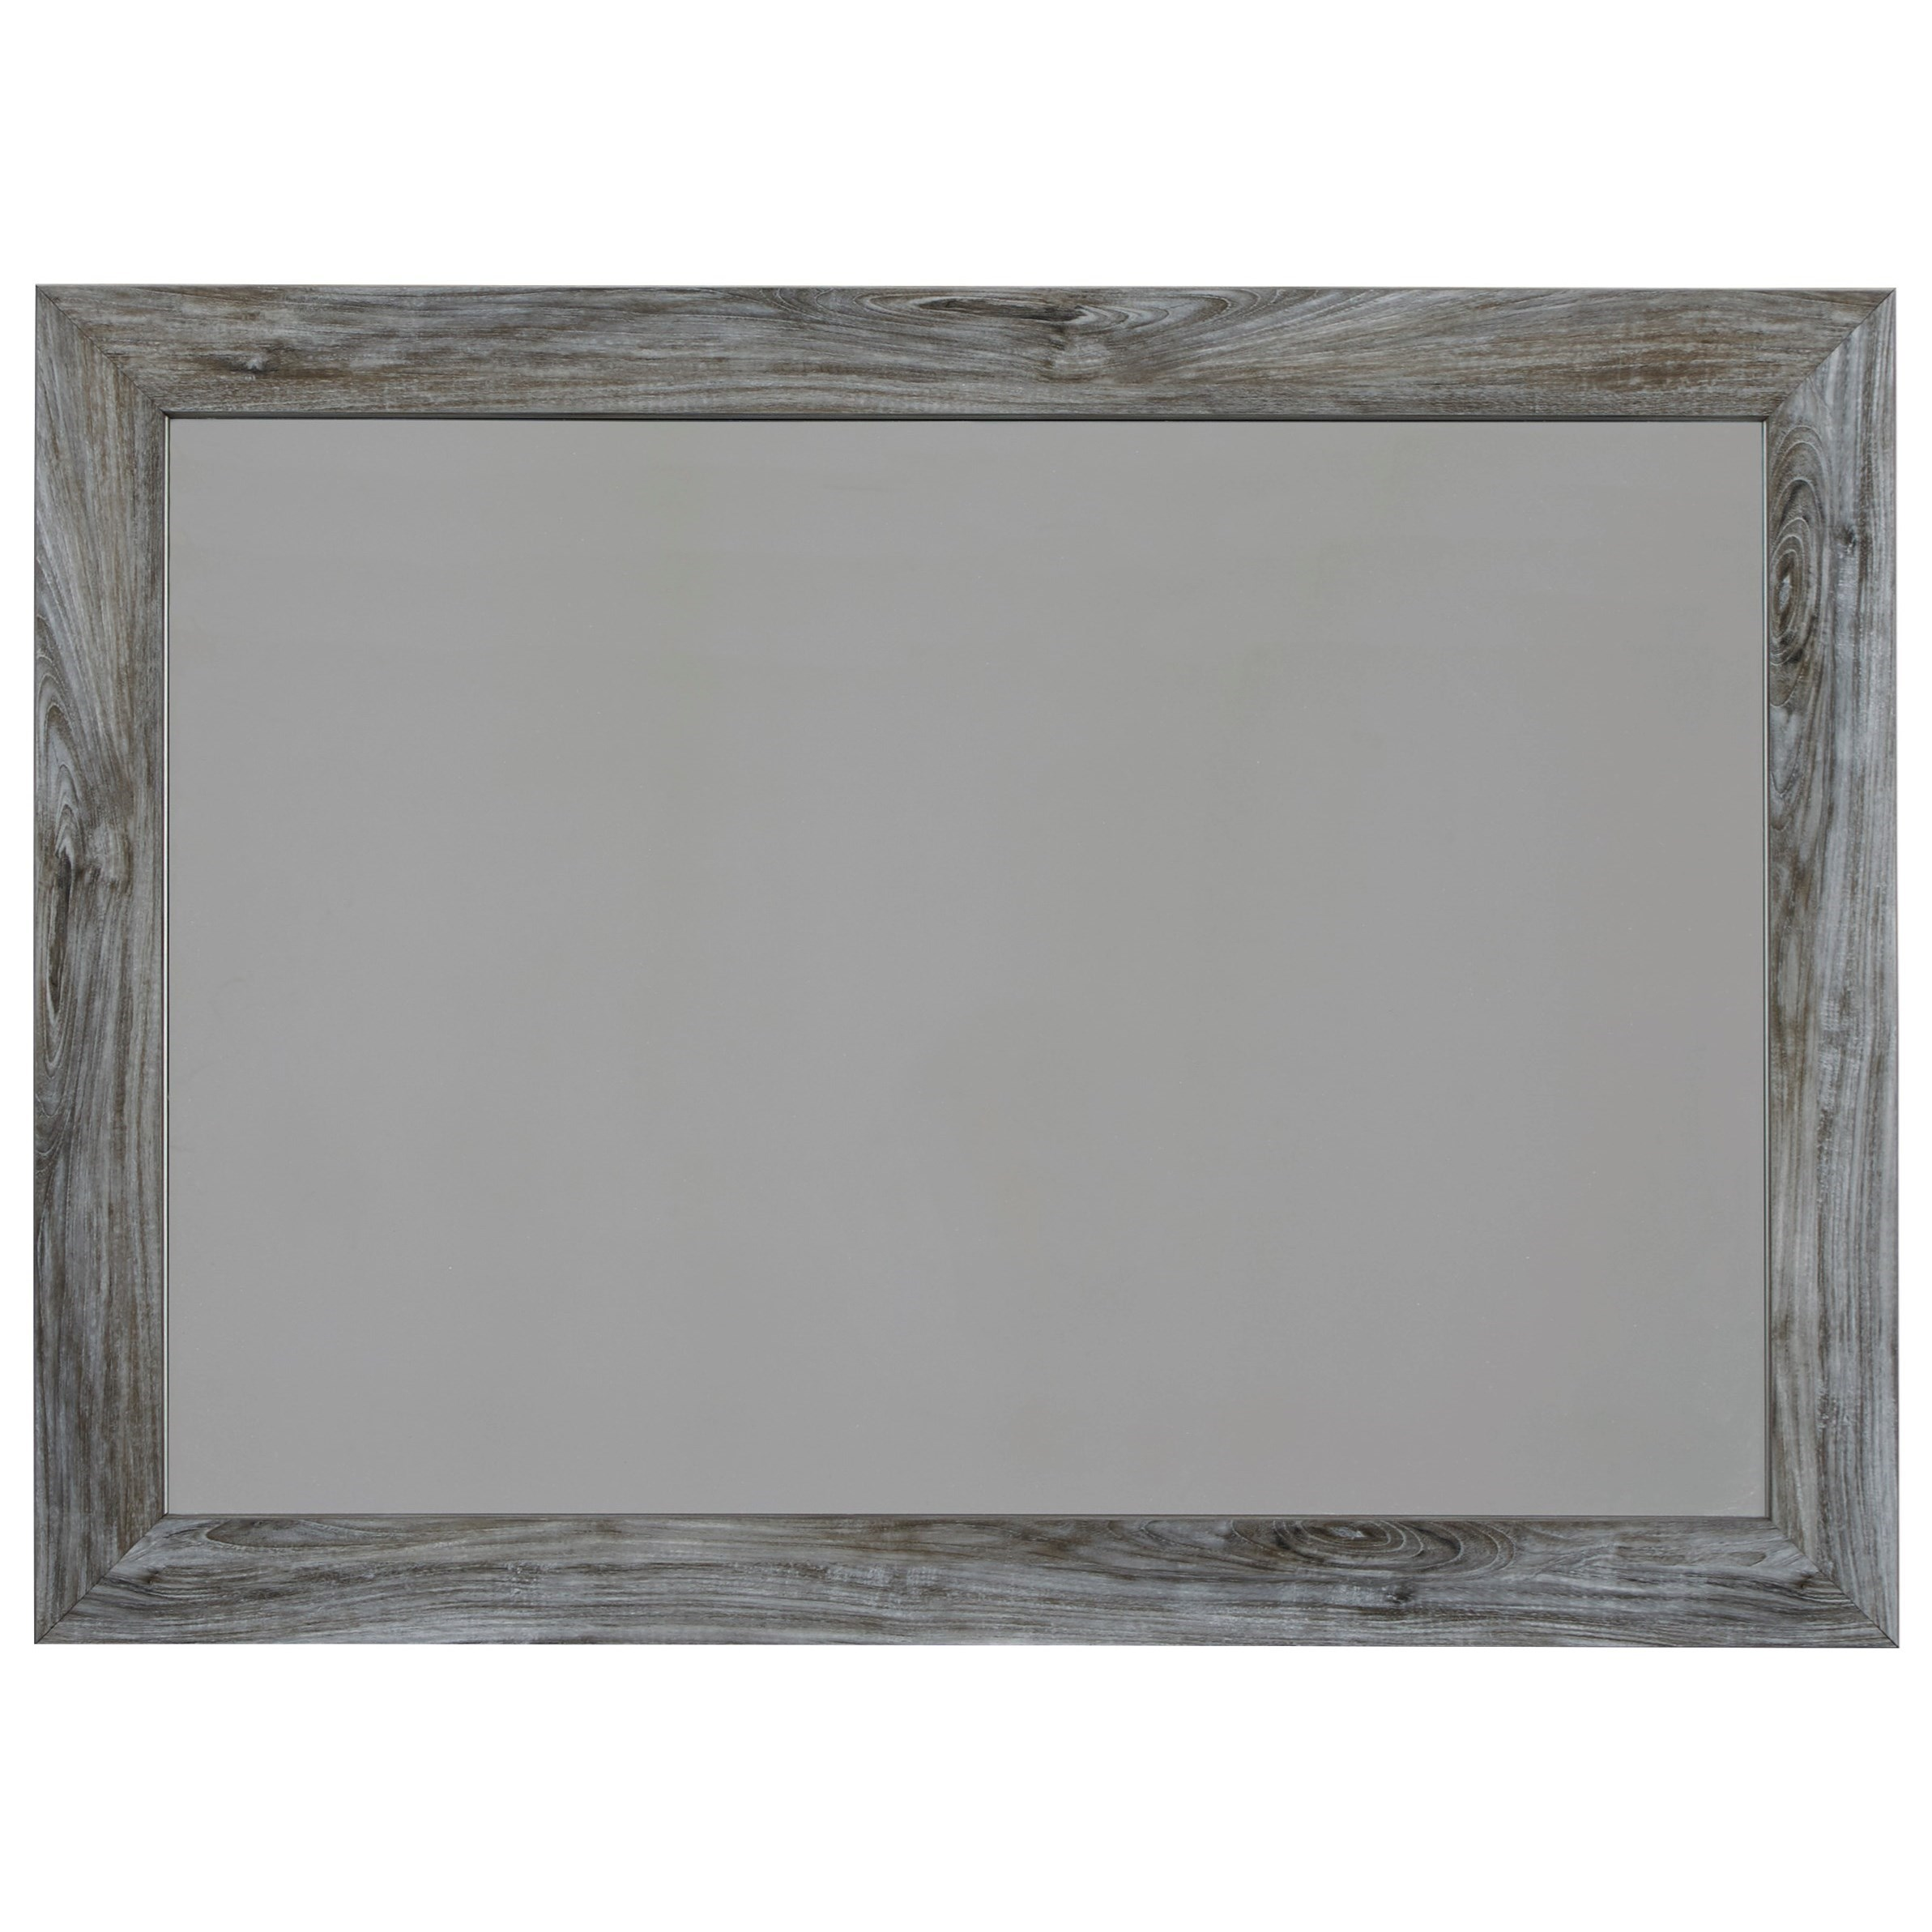 Baystorm Bedroom Mirror by Signature Design by Ashley at Standard Furniture